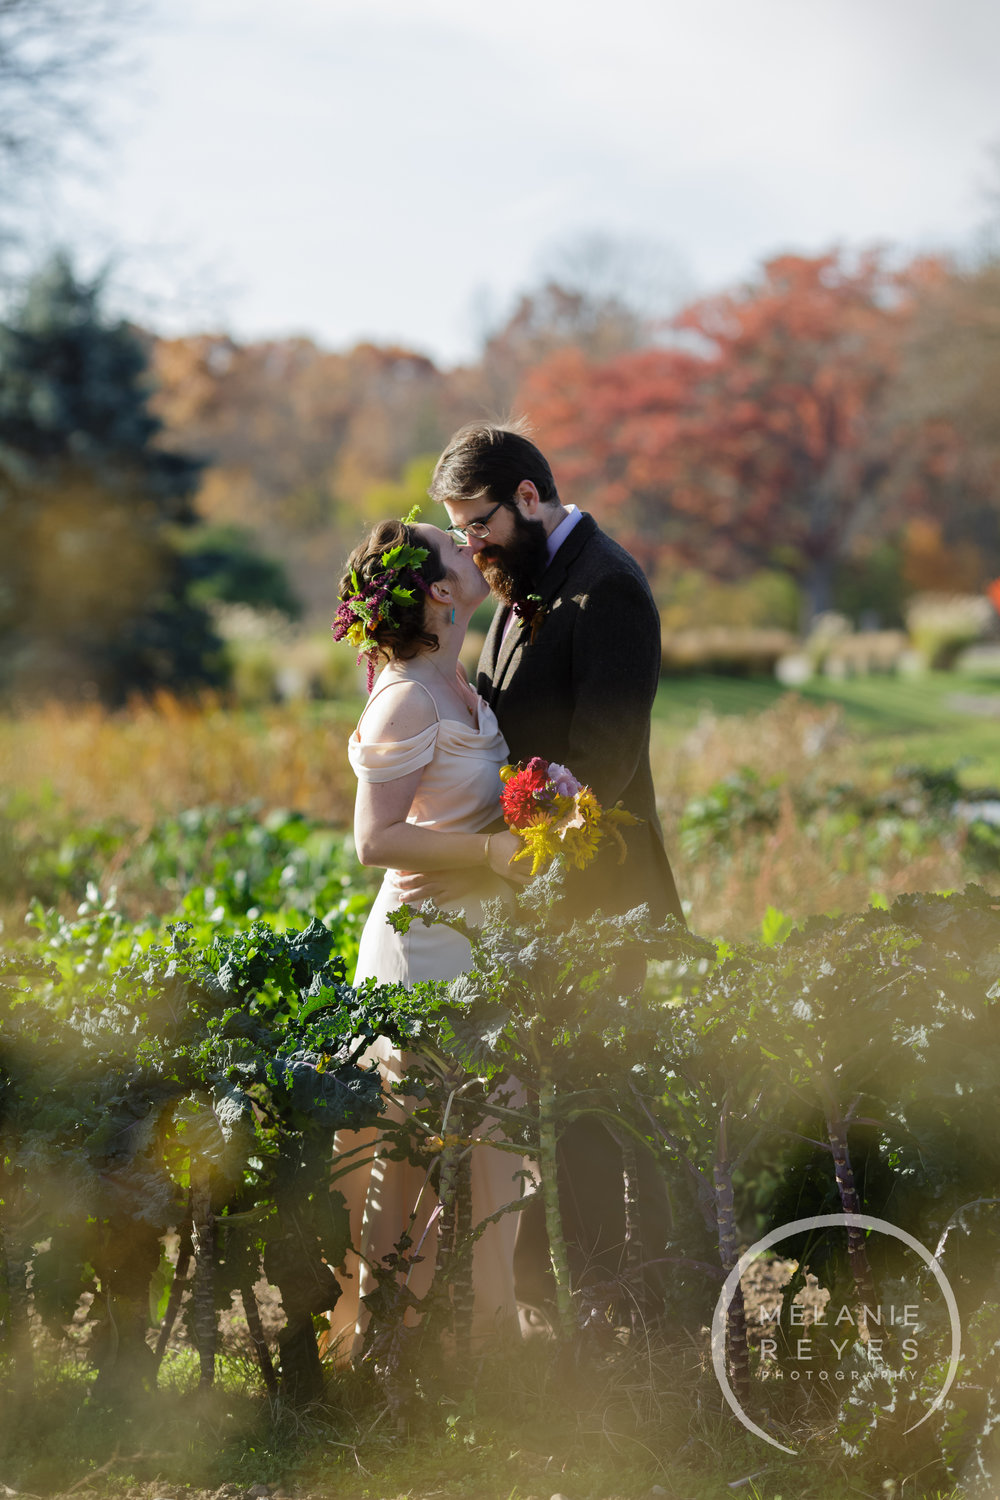 zingermans_cornman_farms_wedding_melanie_reyes_photography_011.JPG